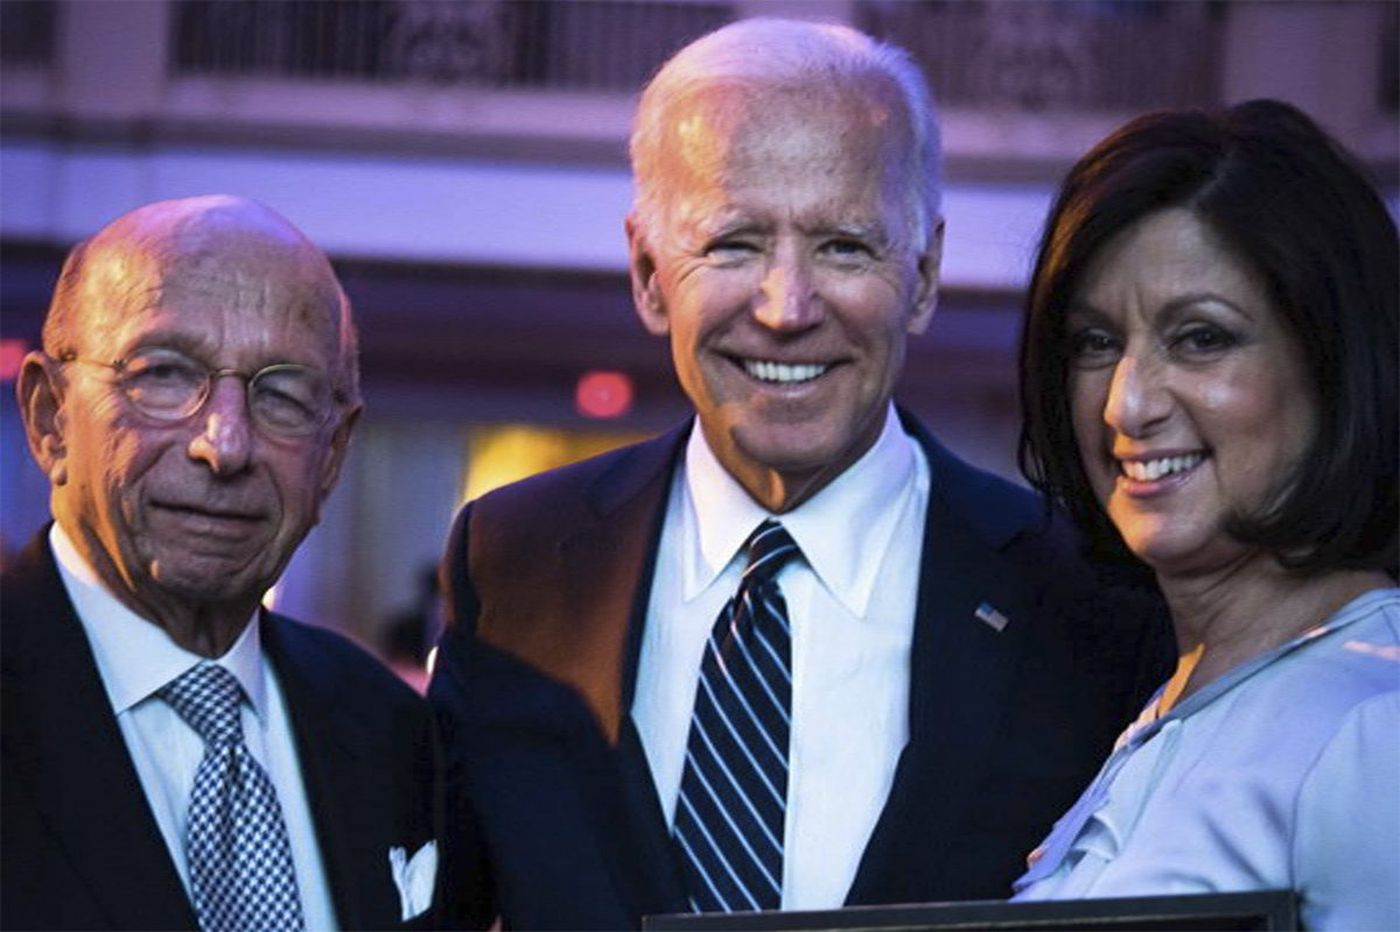 Joe Biden now has his caricature from the Palm